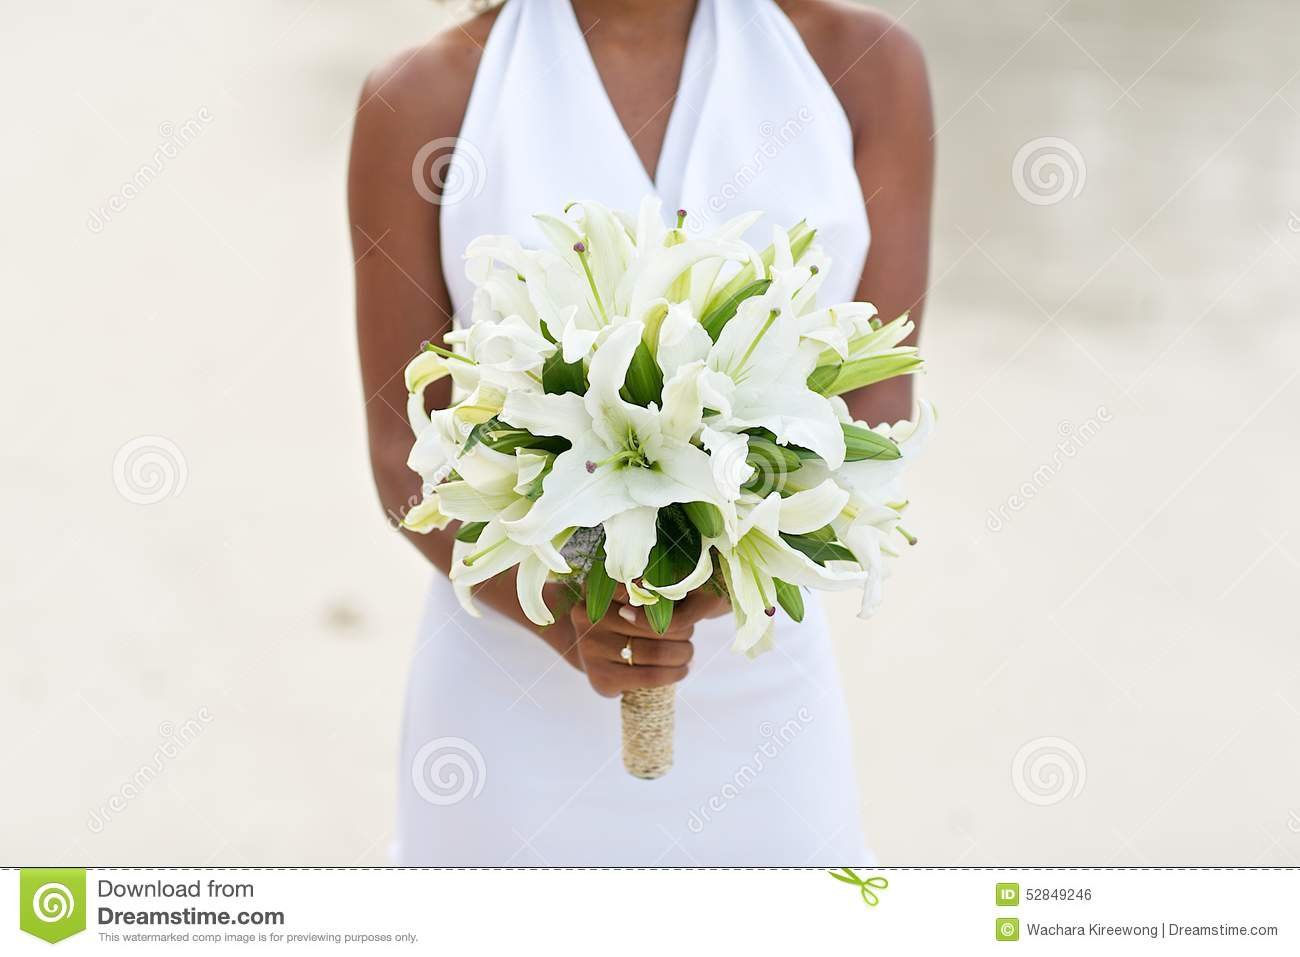 Bride holding white lily flower wedding bouquet stock photo beach bouquet bride flower holding lily sand wedding dhlflorist Choice Image